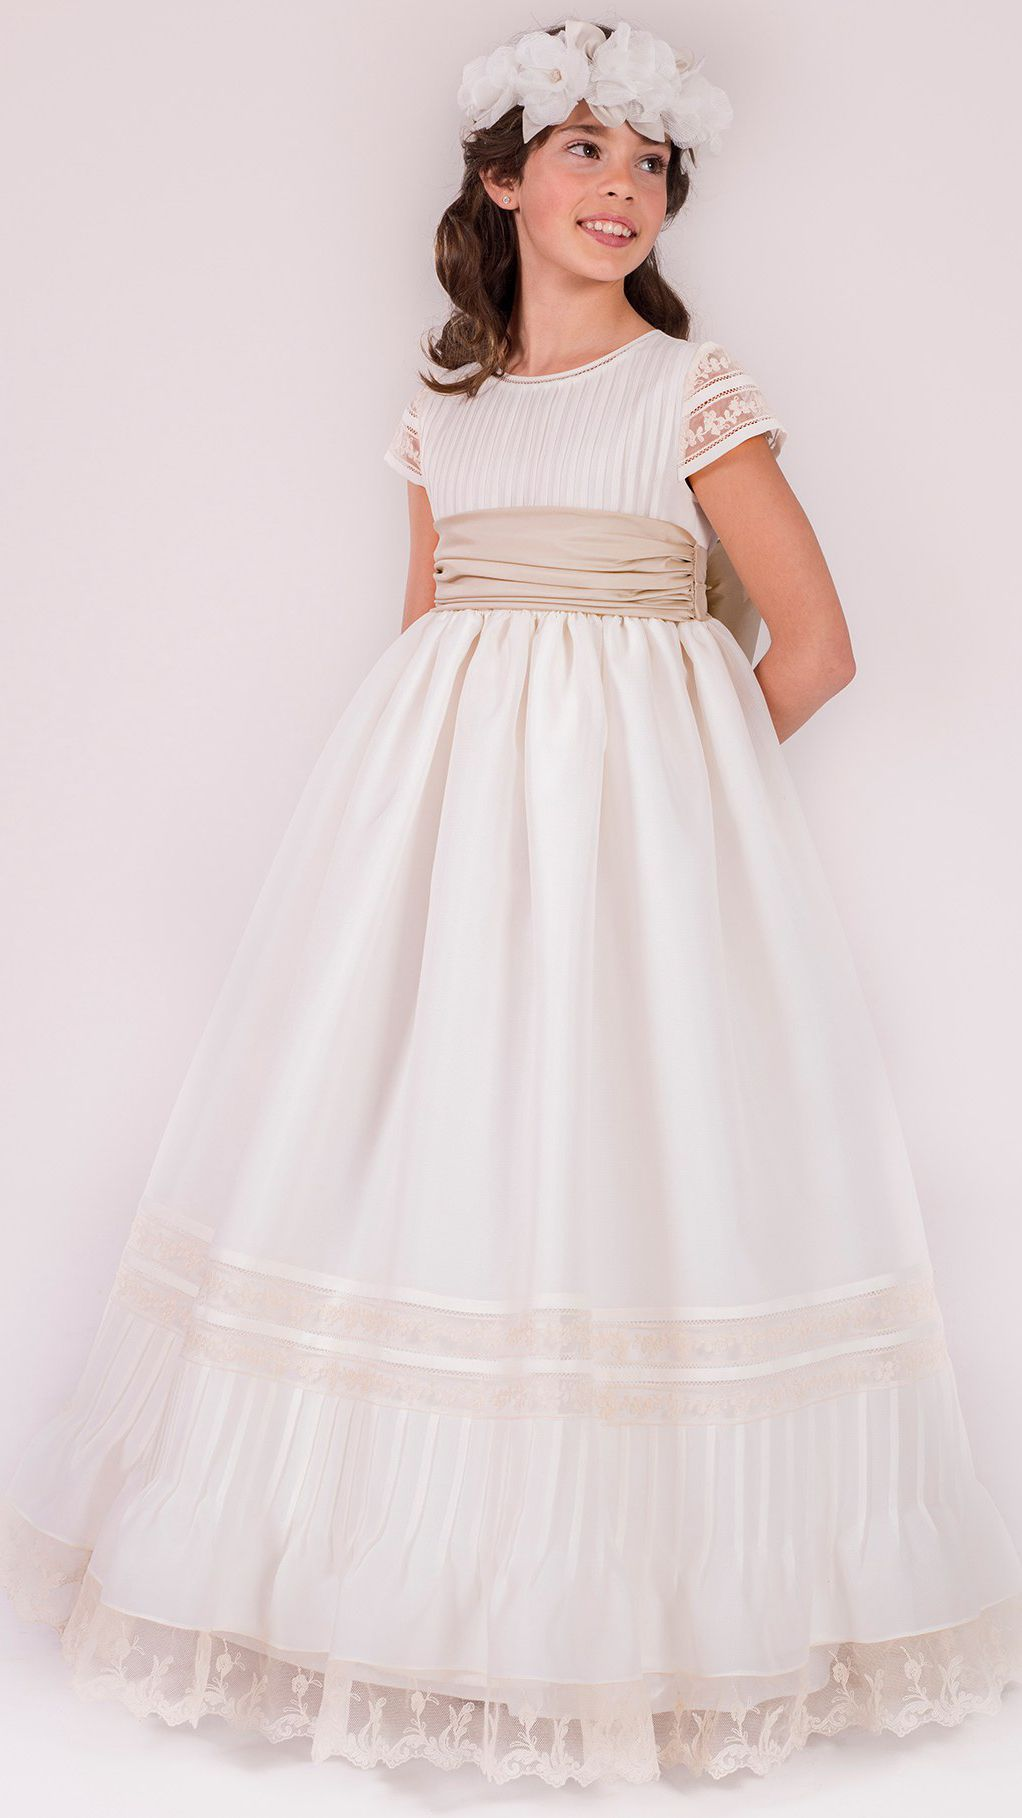 d0e5752d9 A-Line Long Sleeveless Scoop-Neck Lace Satin Flower Girl Dress With ...